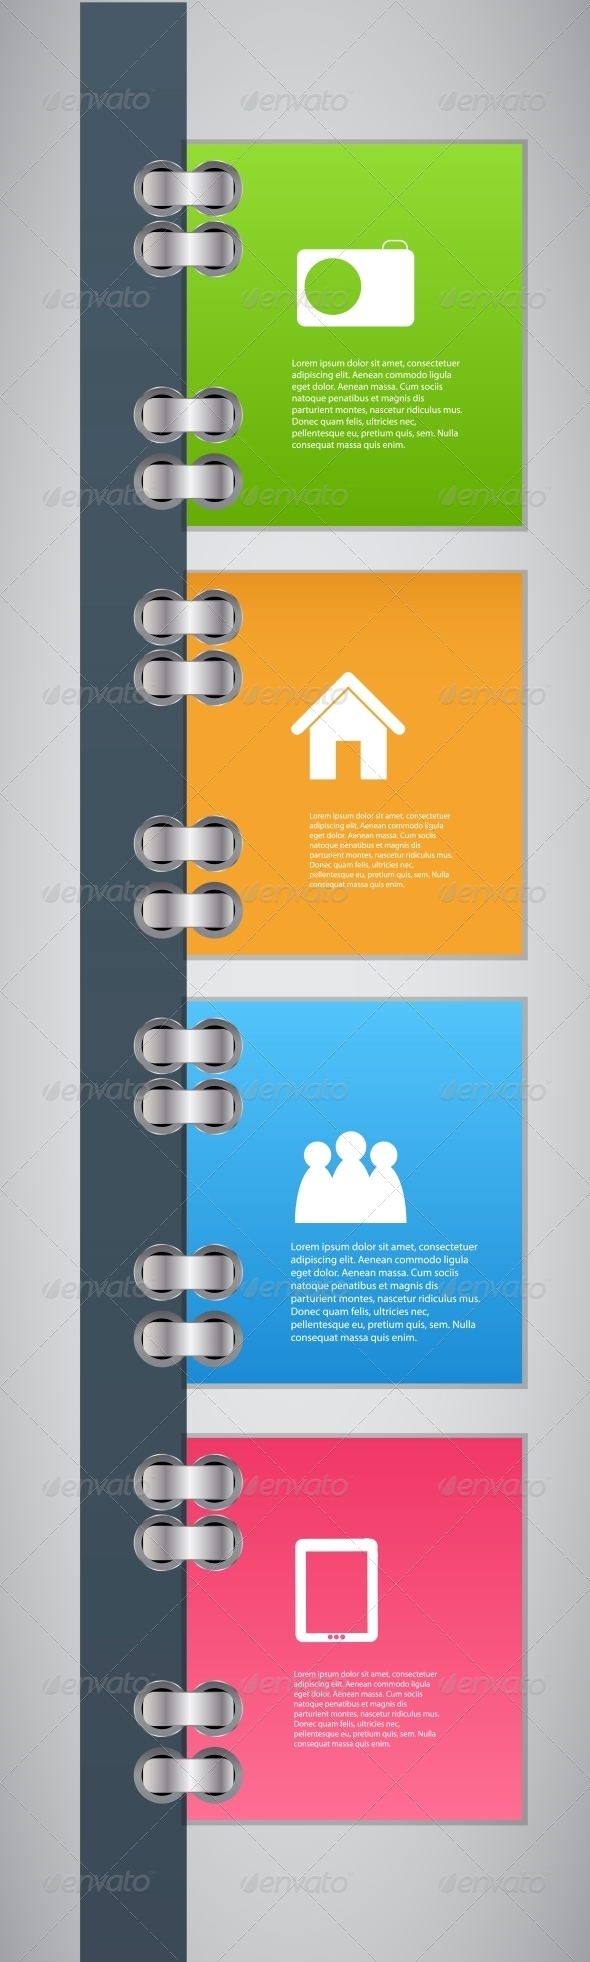 Infographic Template Design Vector Illustration - Concepts Business